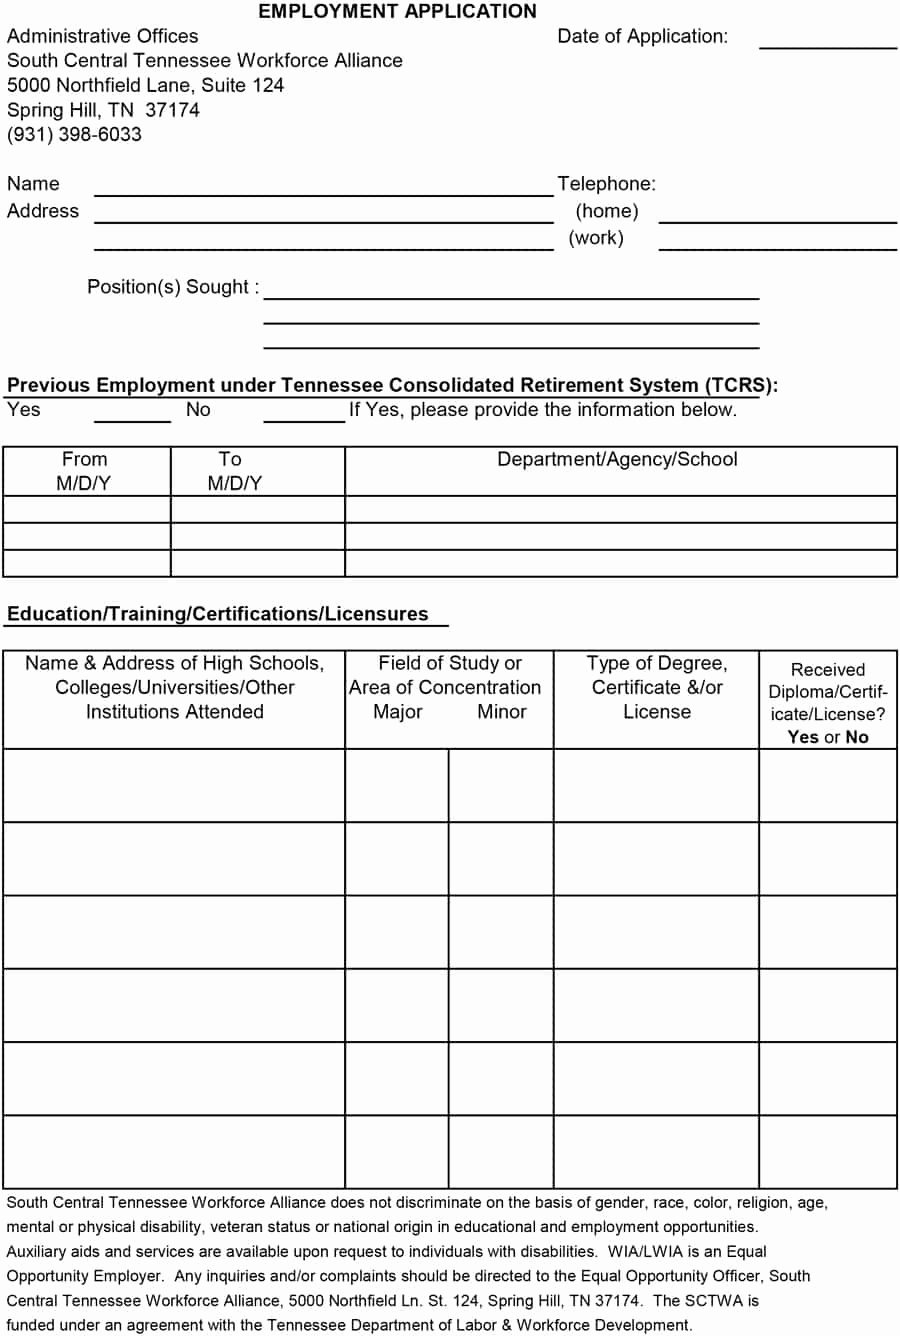 Employee Application form Template Free Fresh 50 Free Employment Job Application form Templates